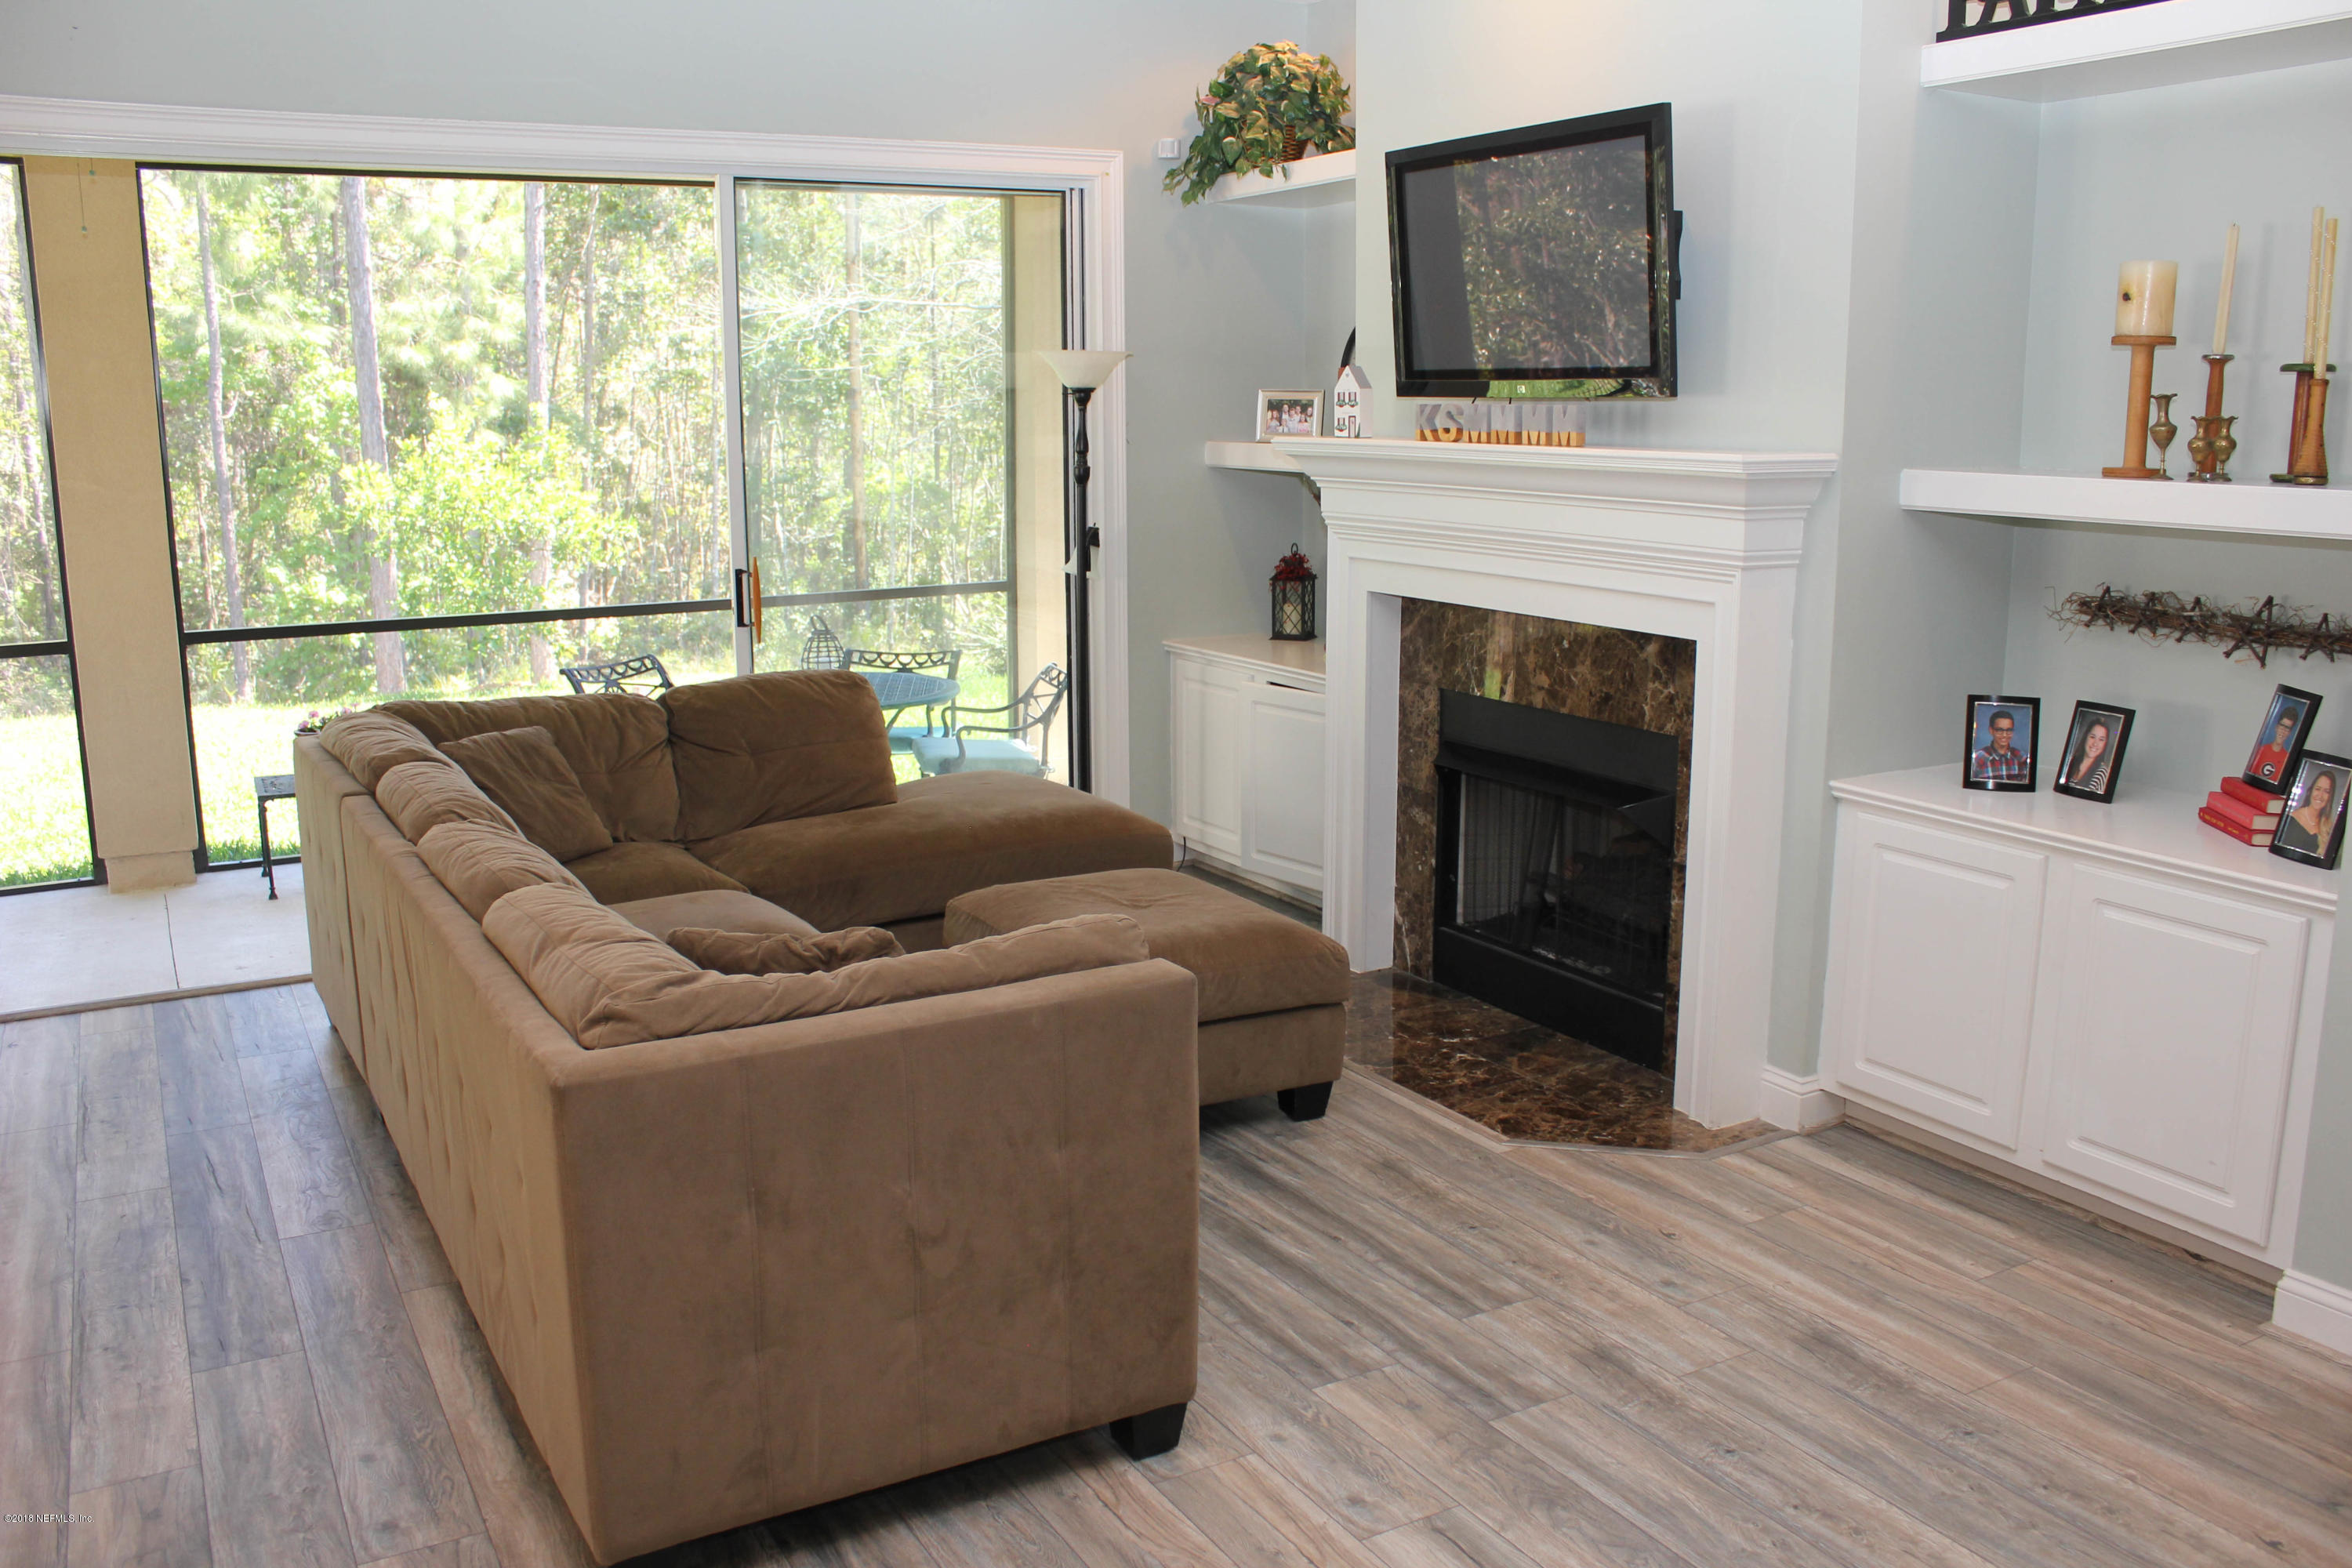 355 CAPE MAY, PONTE VEDRA, FLORIDA 32081, 5 Bedrooms Bedrooms, ,3 BathroomsBathrooms,Residential - single family,For sale,CAPE MAY,927780